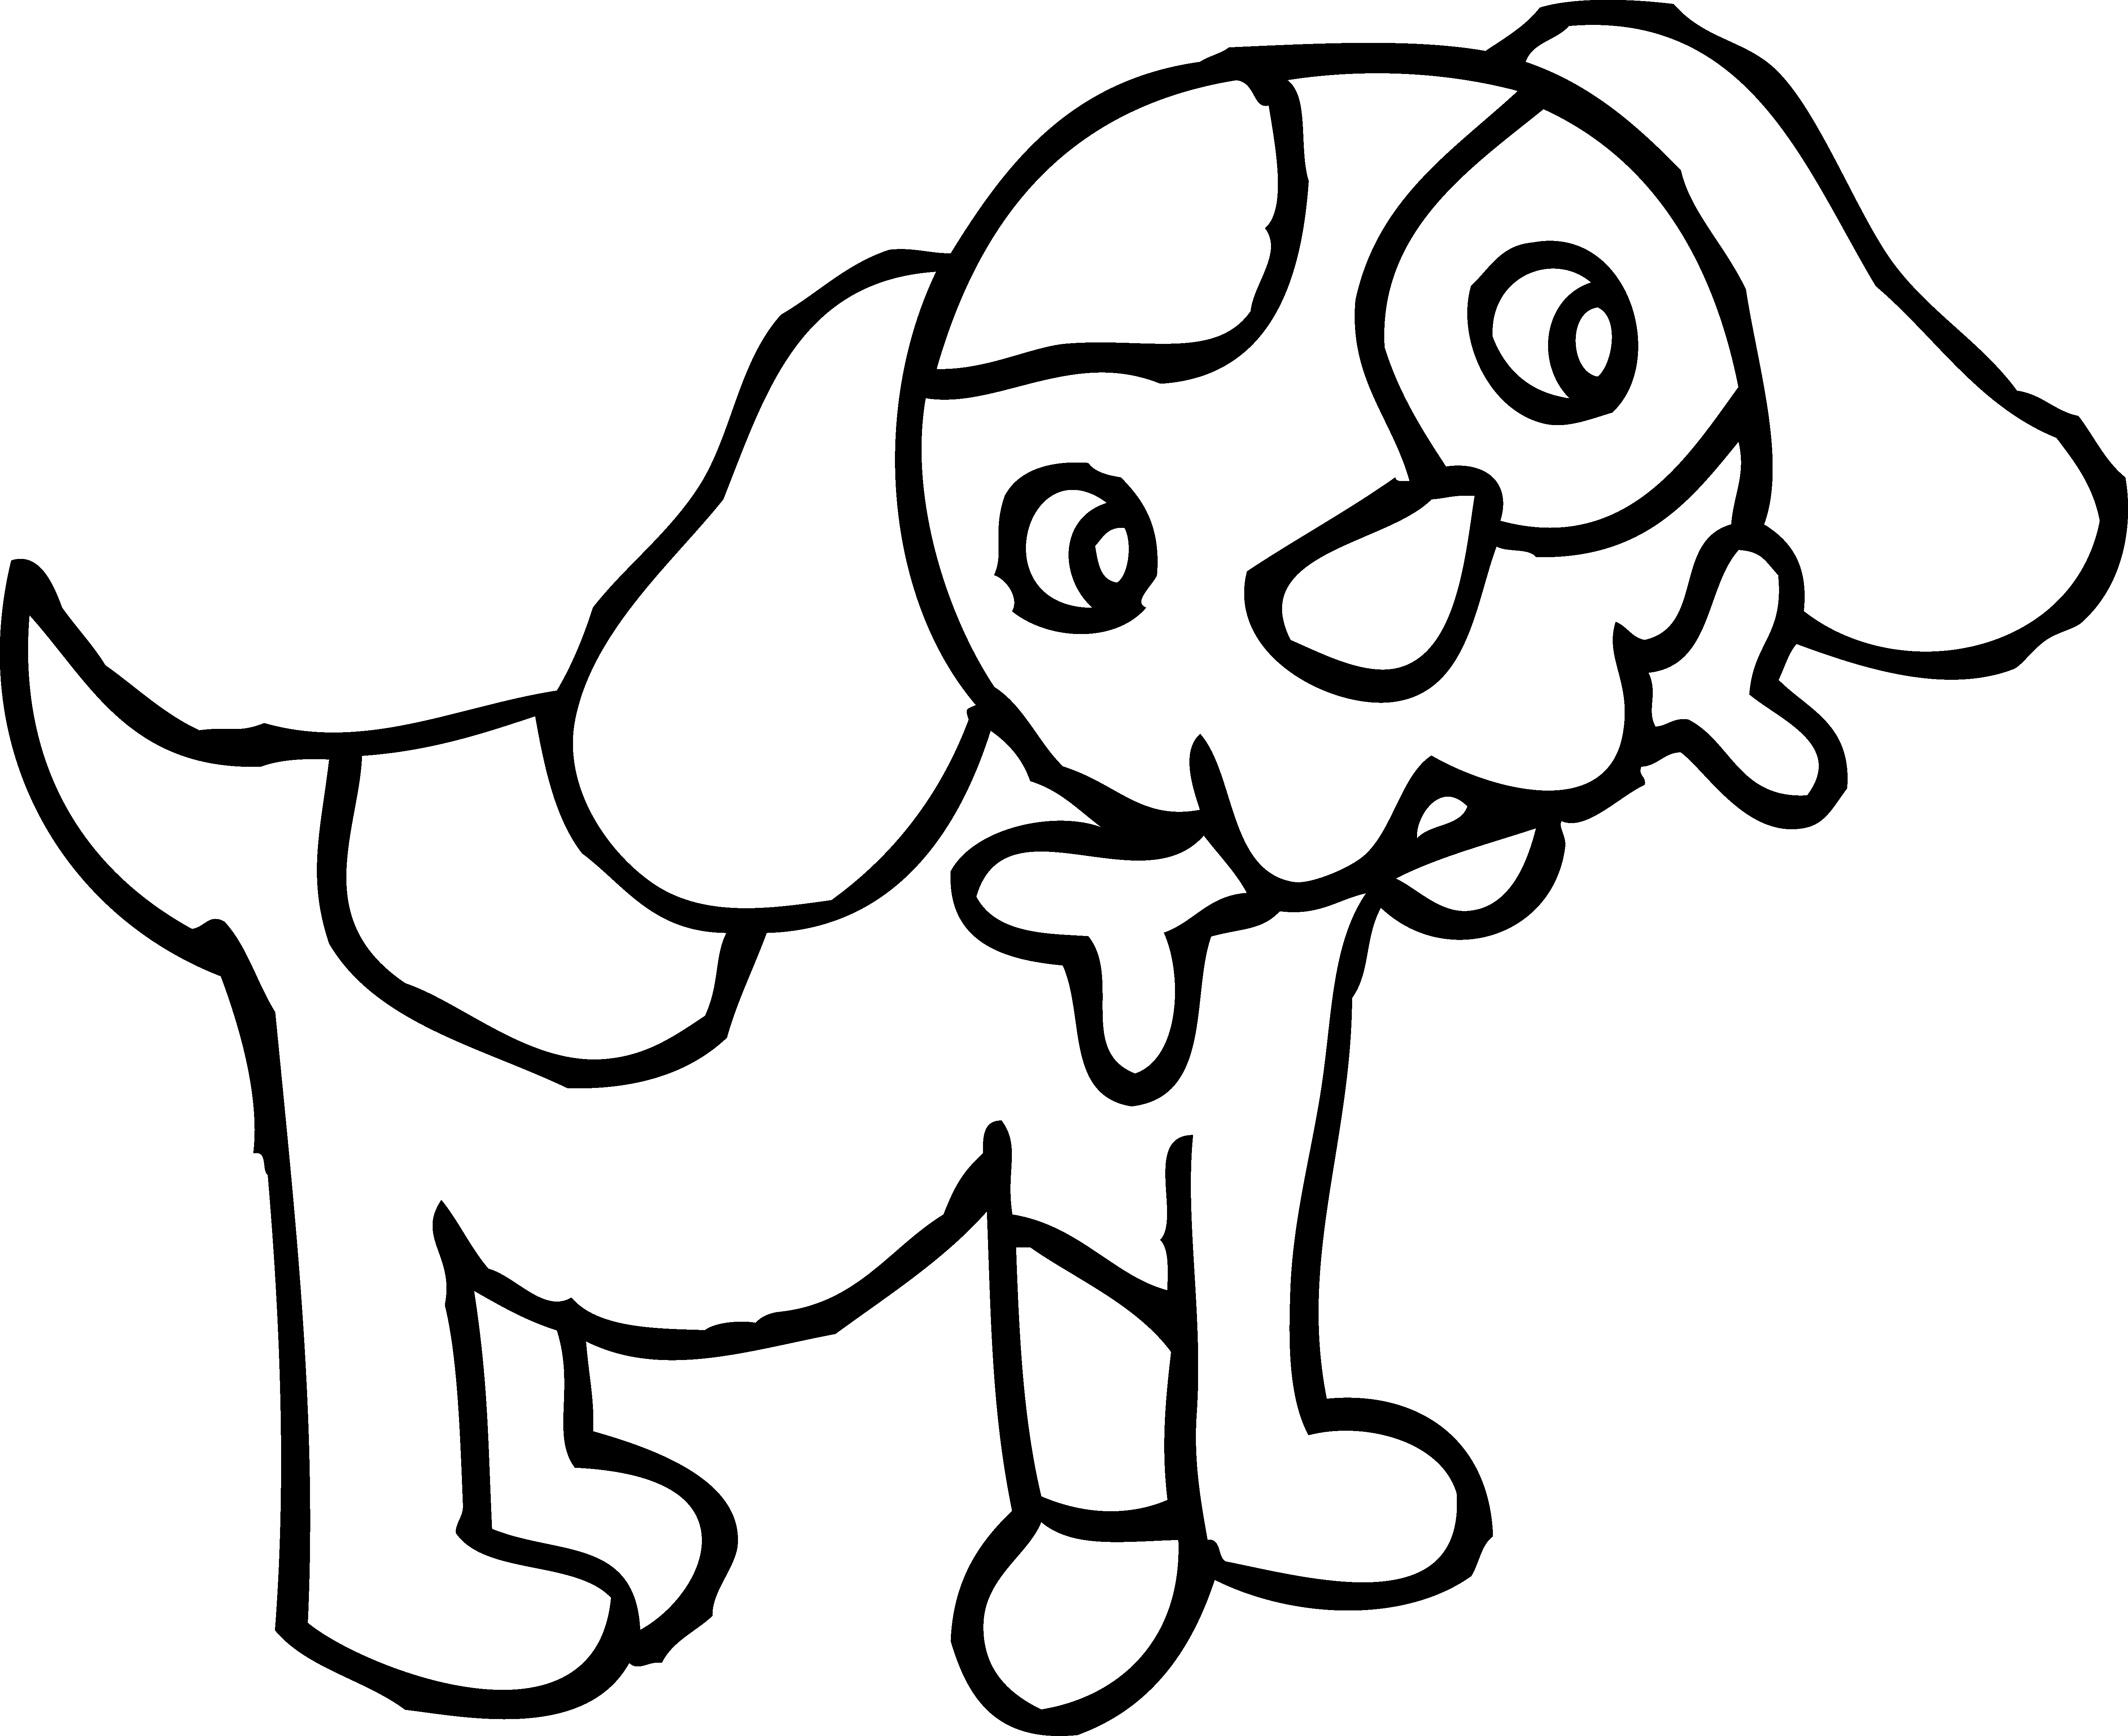 Pets clipart black and white Clipart dog%20face%20clip%20art%20black%20and%20white Puppy Dog Art